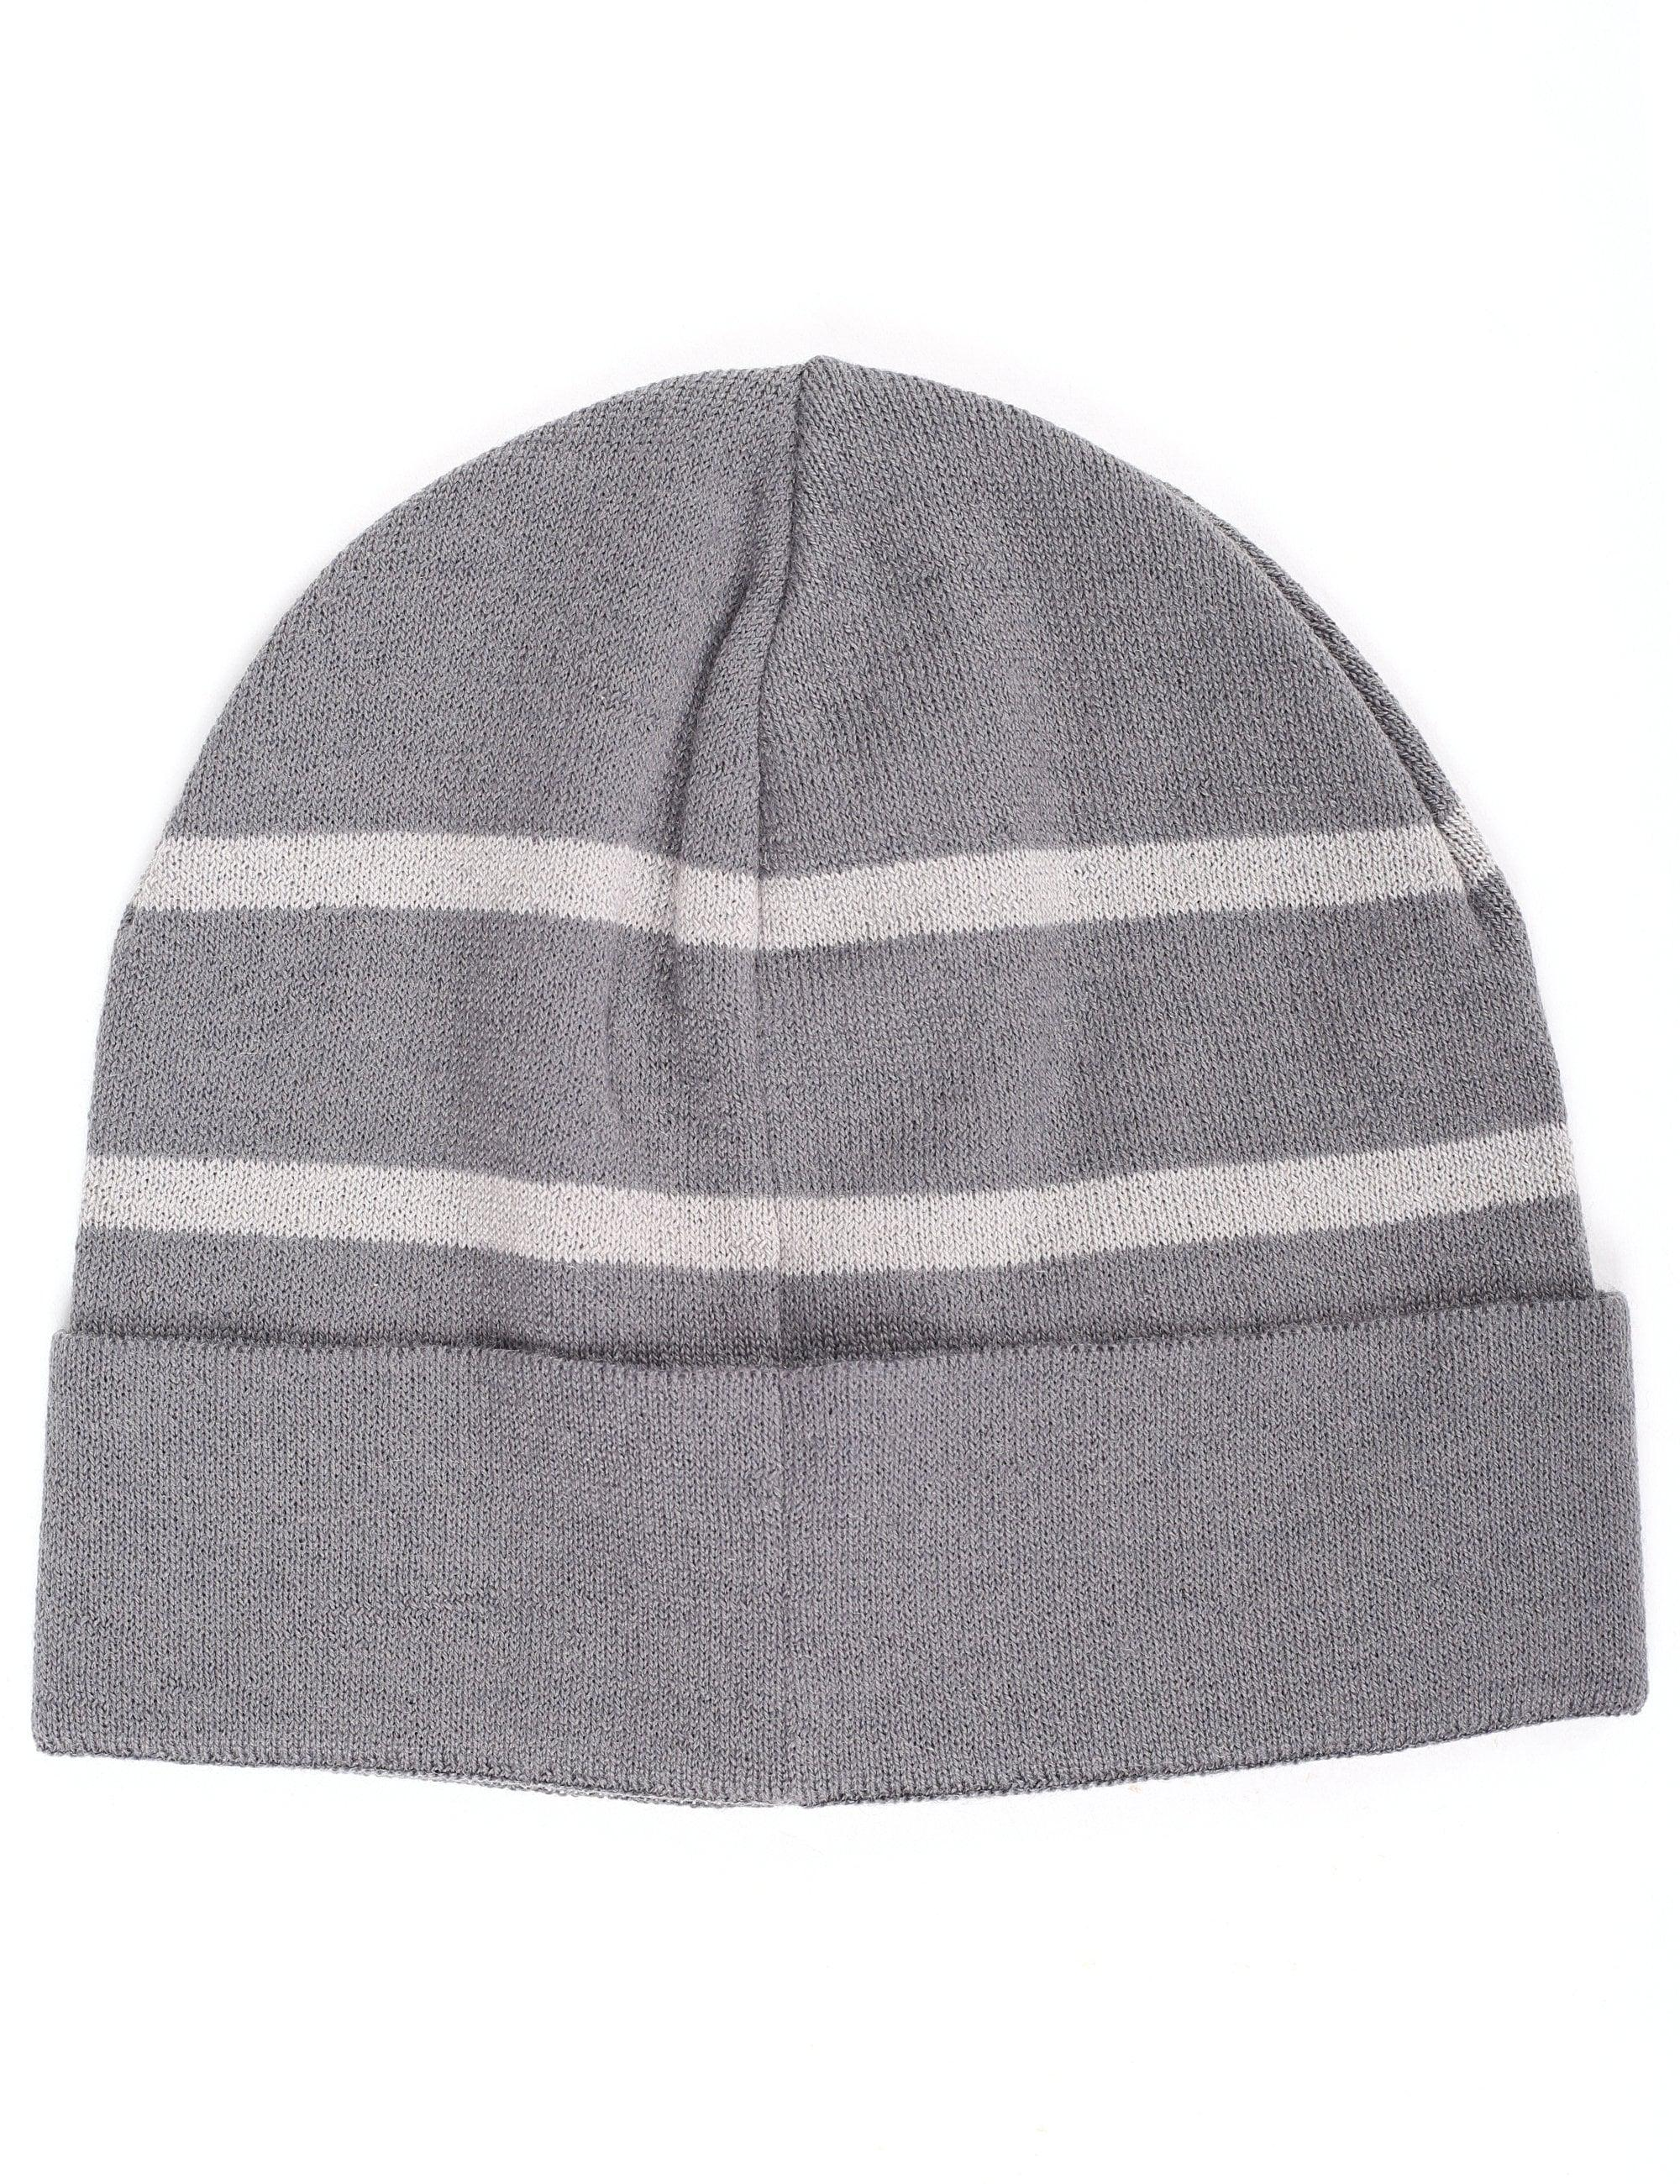 fb2cd43c07f Emporio Armani Men s Eagle Logo Beanie Grey in Gray for Men - Lyst